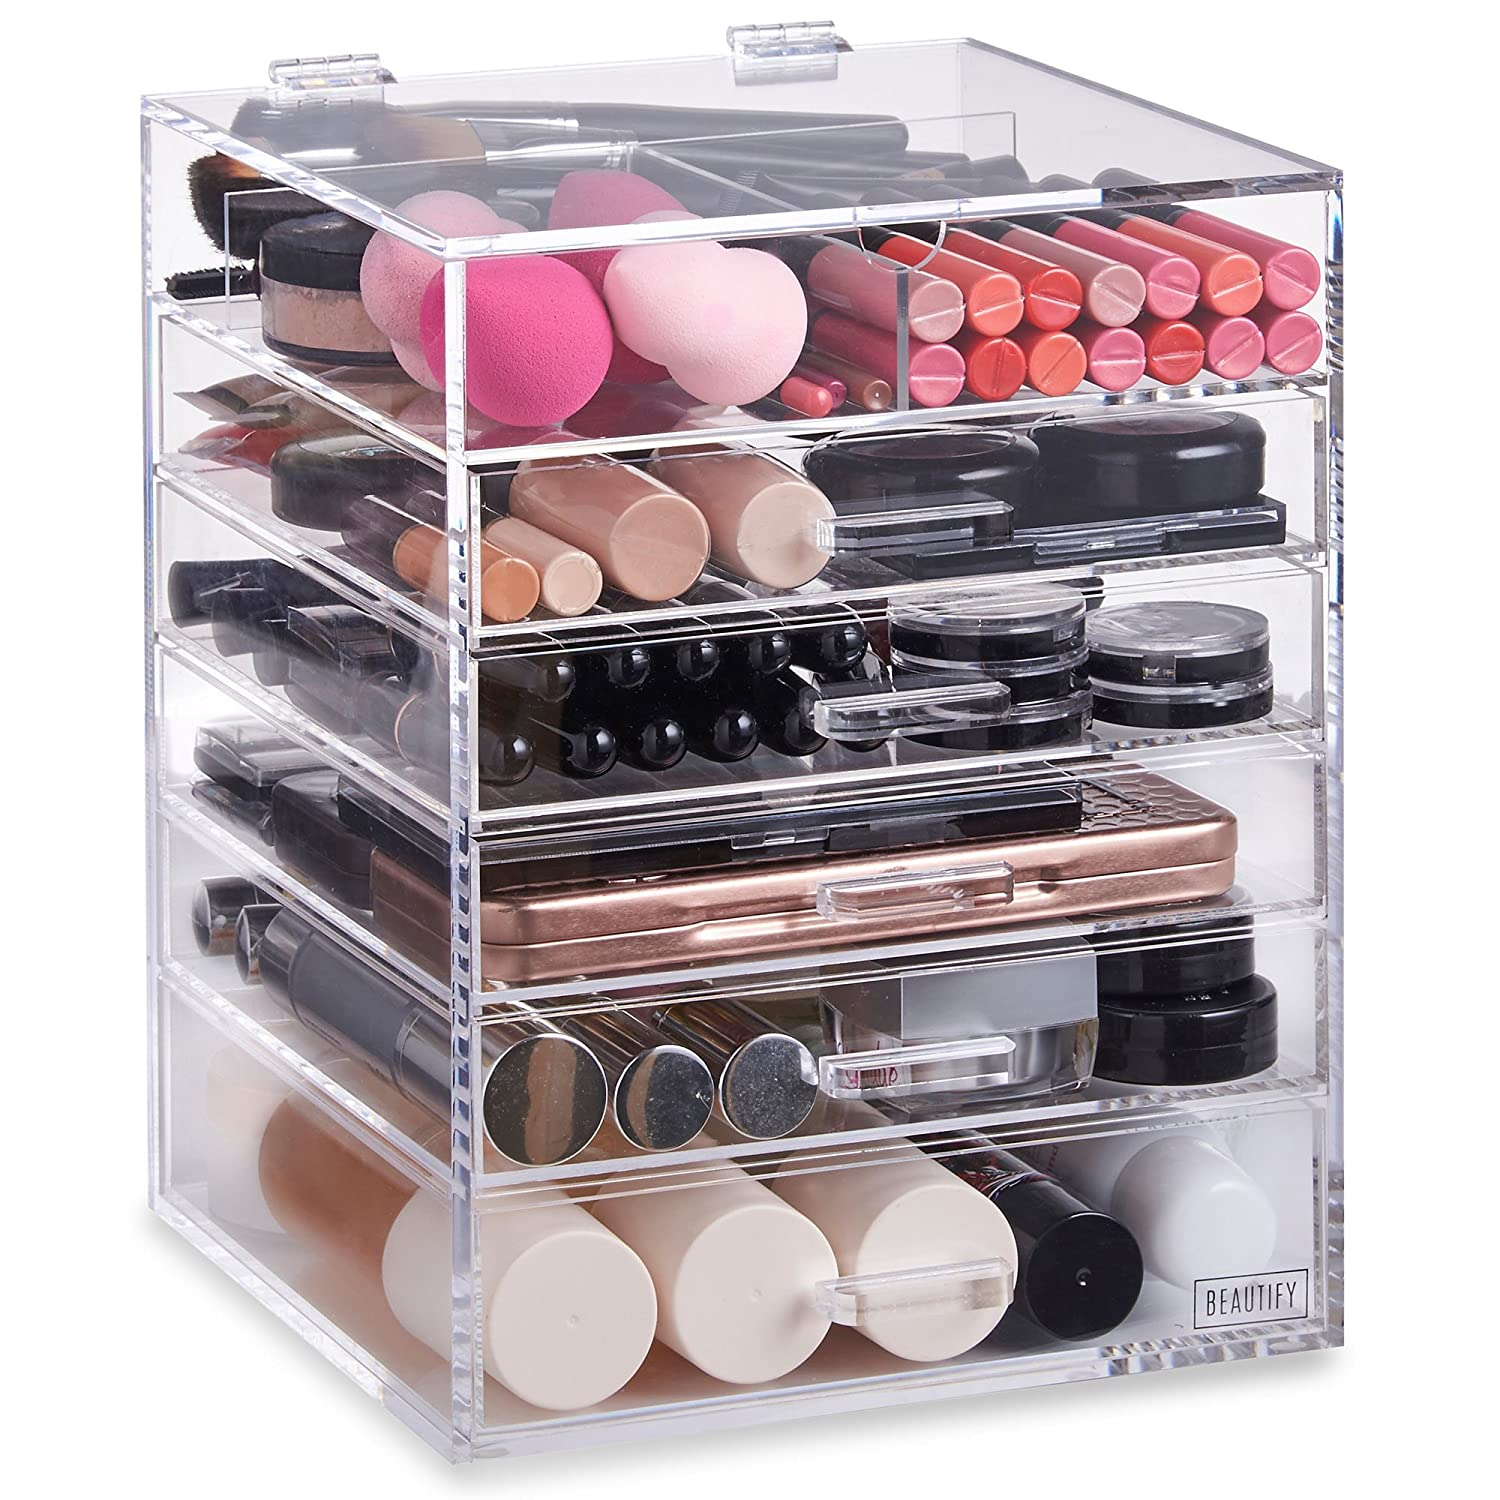 Beautify Acrylic Cosmetic Organiser Clear Makeup Beauty Storage Box Cube With 5 Drawers 6 Tier & Removable Divider 10/044